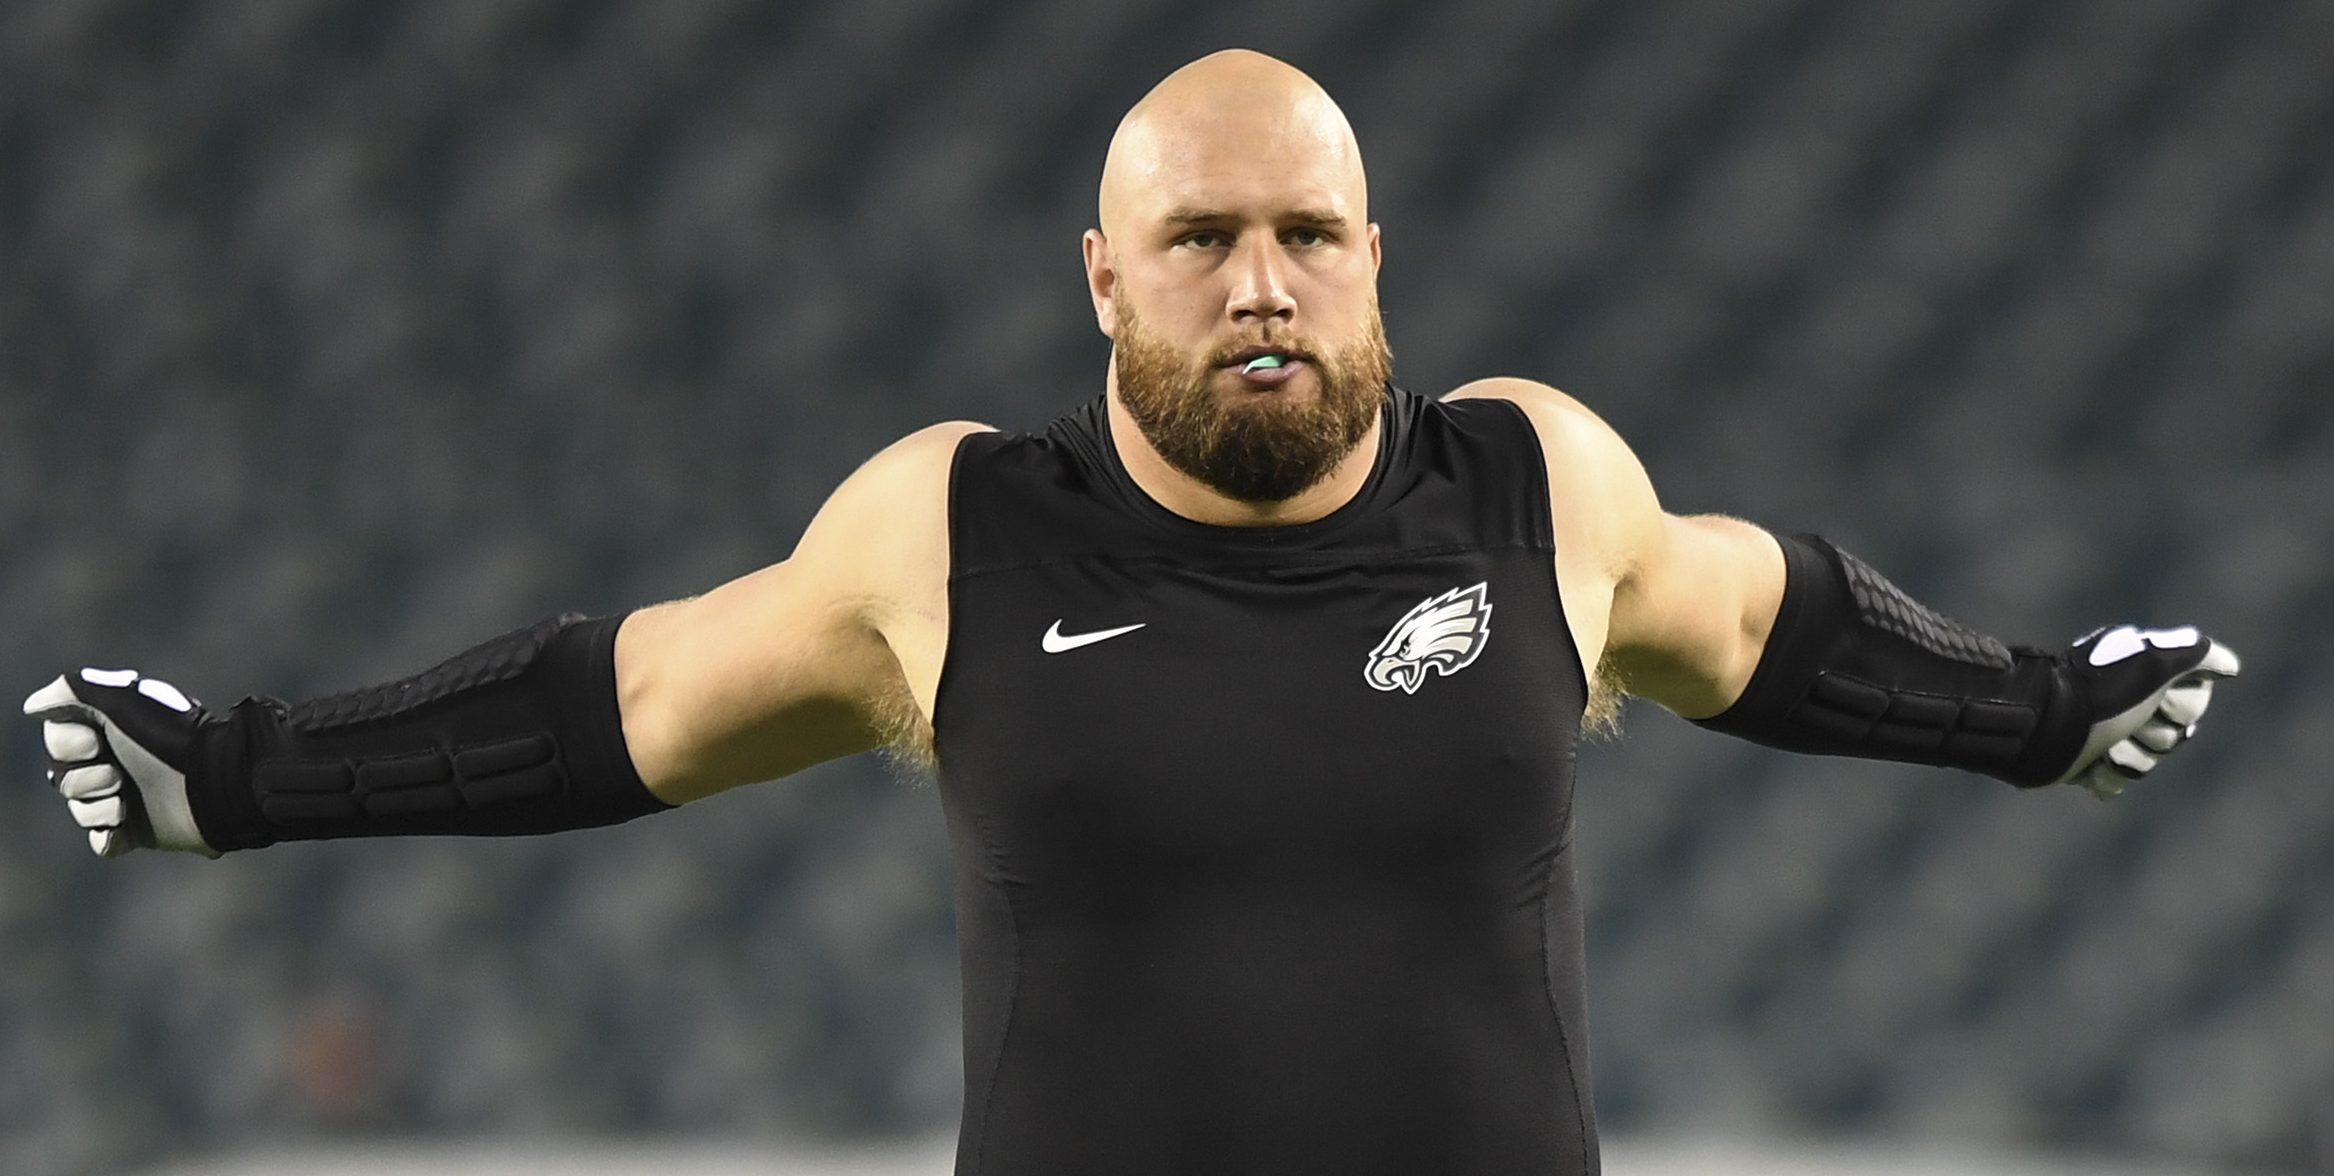 Eagles right tackle Lane Johnson stretches before a game.